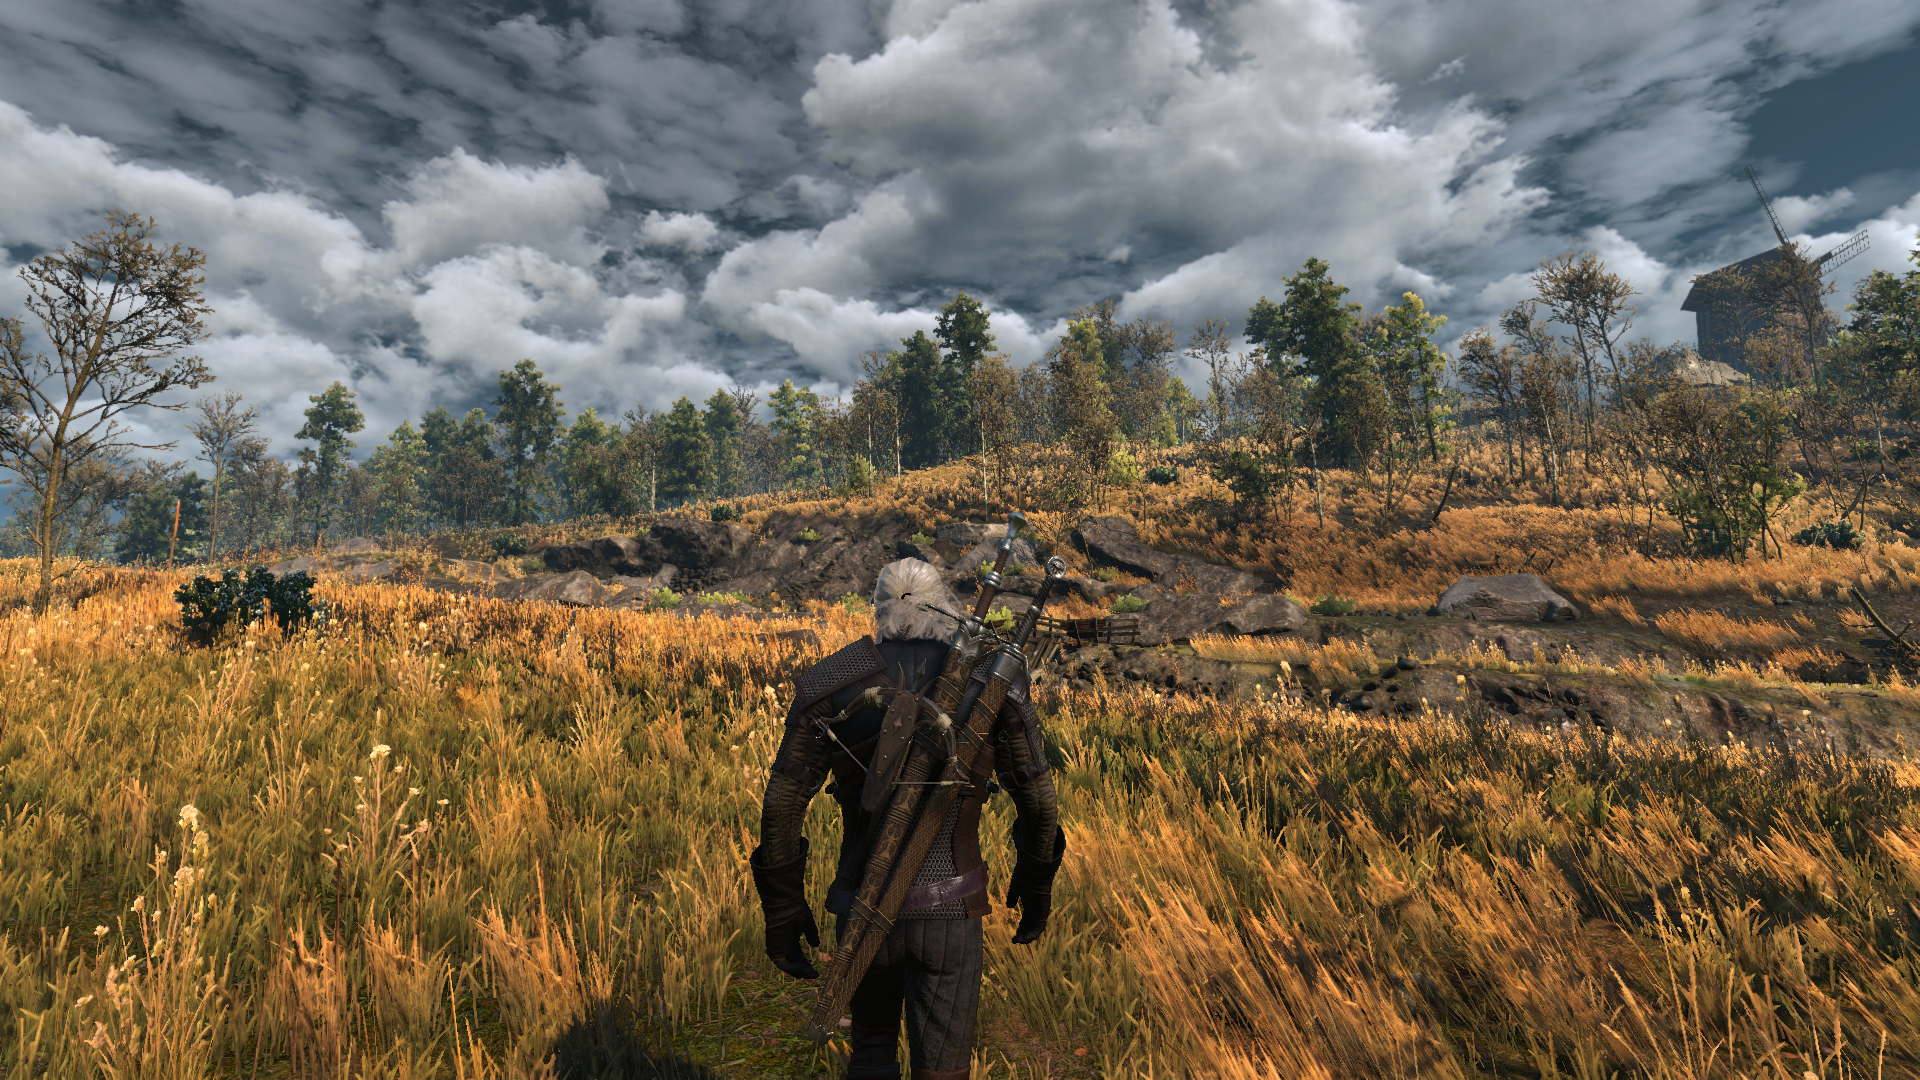 New The Witcher 3 Mod Improves GUI With Better Framerate